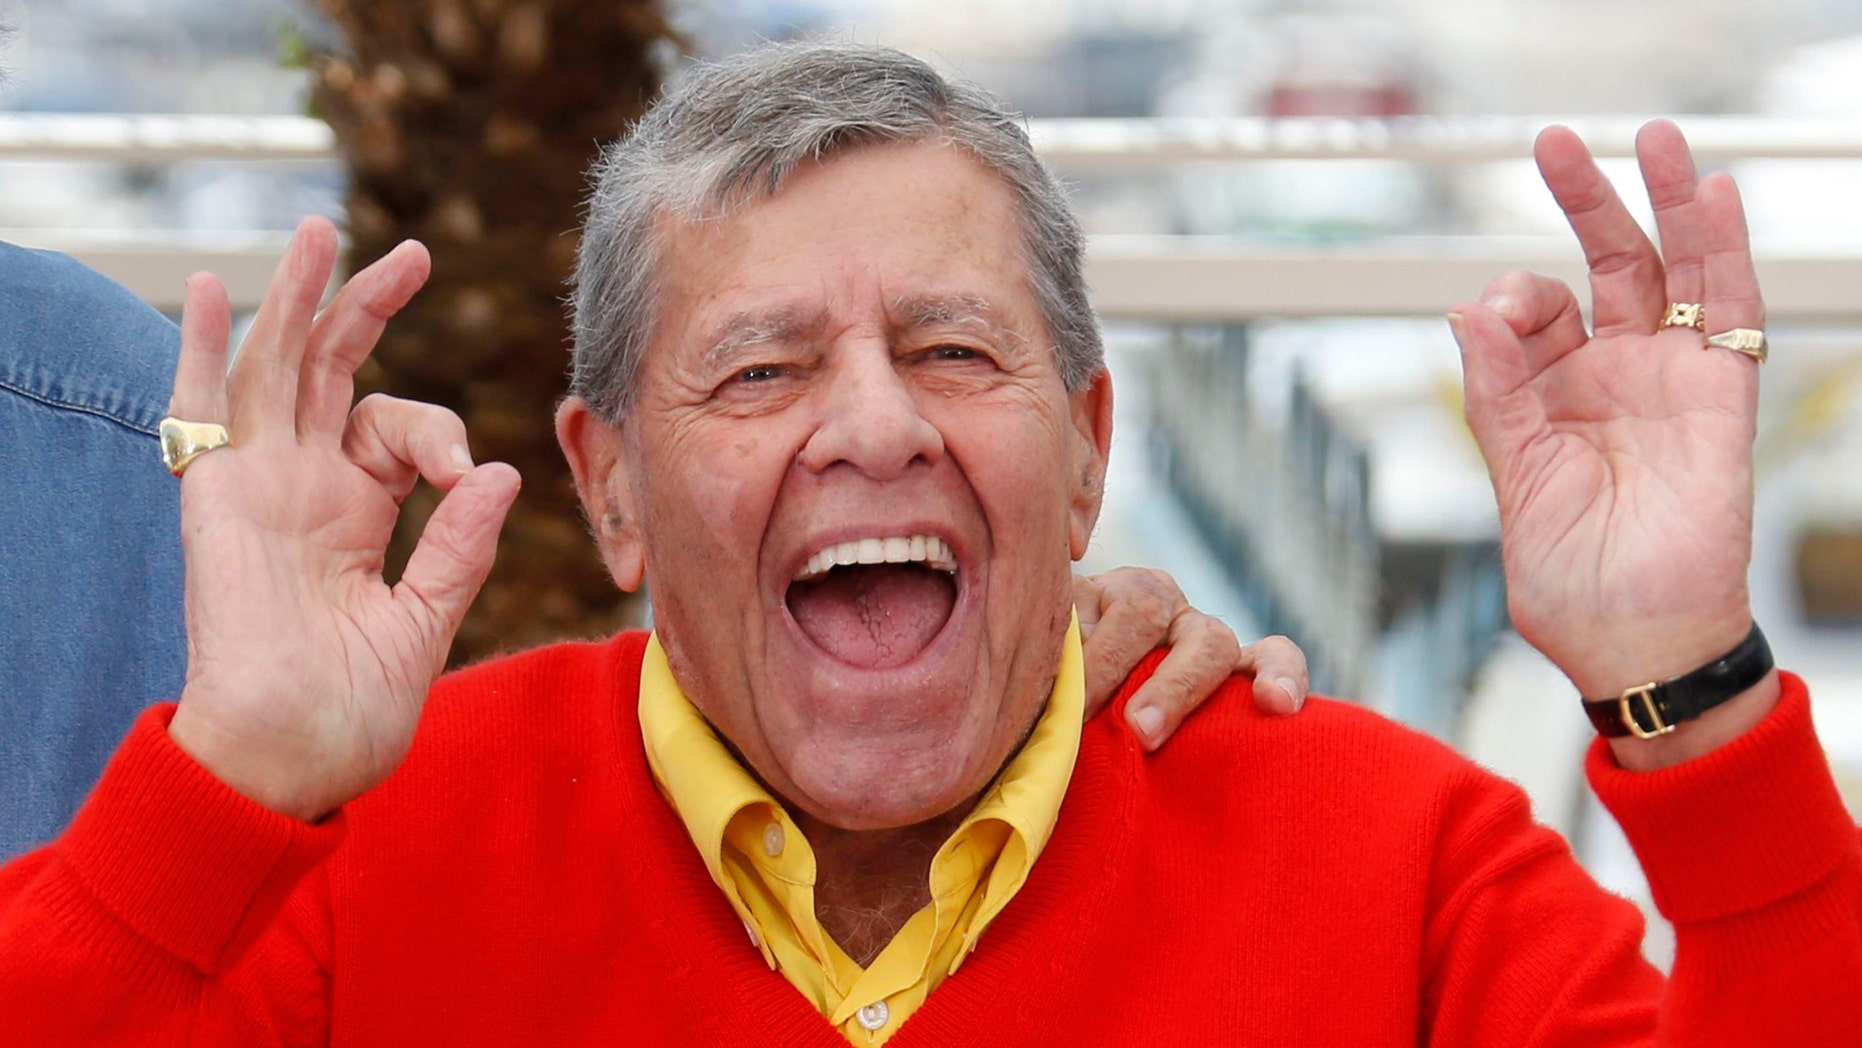 """Cast member Jerry Lewis poses during a photocall for the film """"Max Rose"""" at the 66th Cannes Film Festival in Cannes May 23, 2013.                  REUTERS/Regis Duvignau (FRANCE  - Tags: ENTERTAINMENT)   - RTXZXRS"""